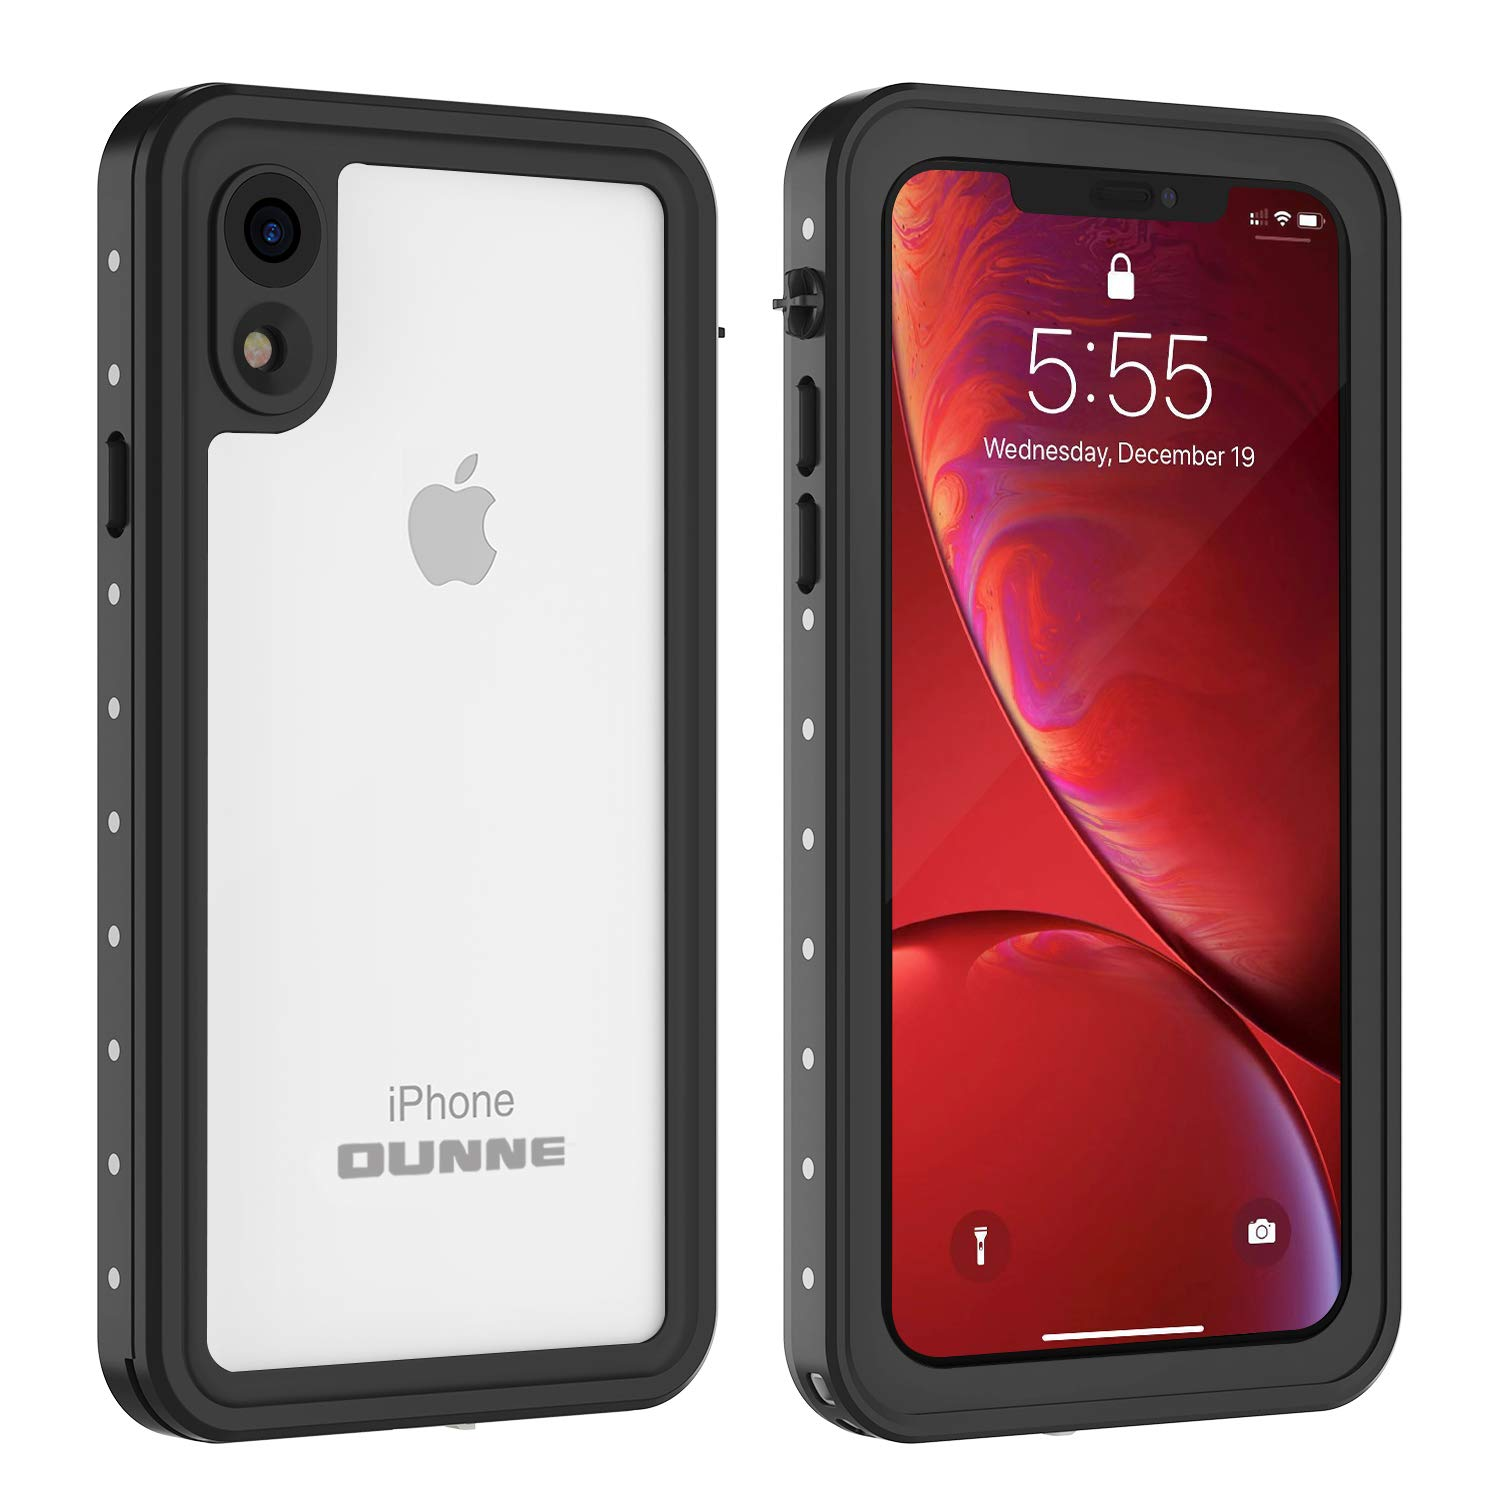 OUNNE iPhone XR Waterproof Case, Full Sealed Underwater Cover IP68 Certified Dustproof Snowproof Shockproof Waterproof Phone Case for iPhone XR (Clear)